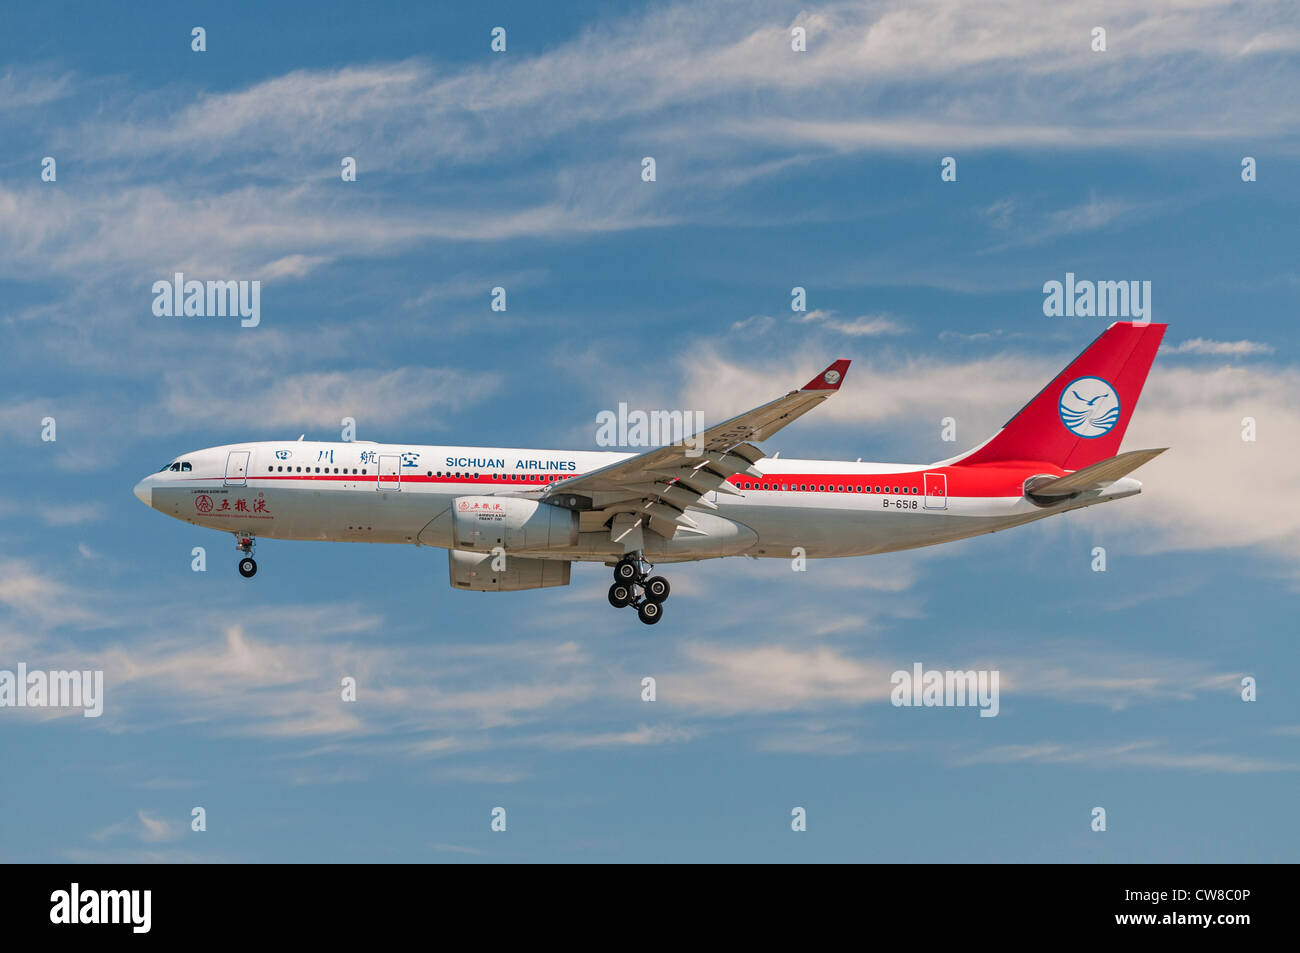 A Sichuan Airlines Airbus A330-200 jetliner on final approach for landing - Stock Image